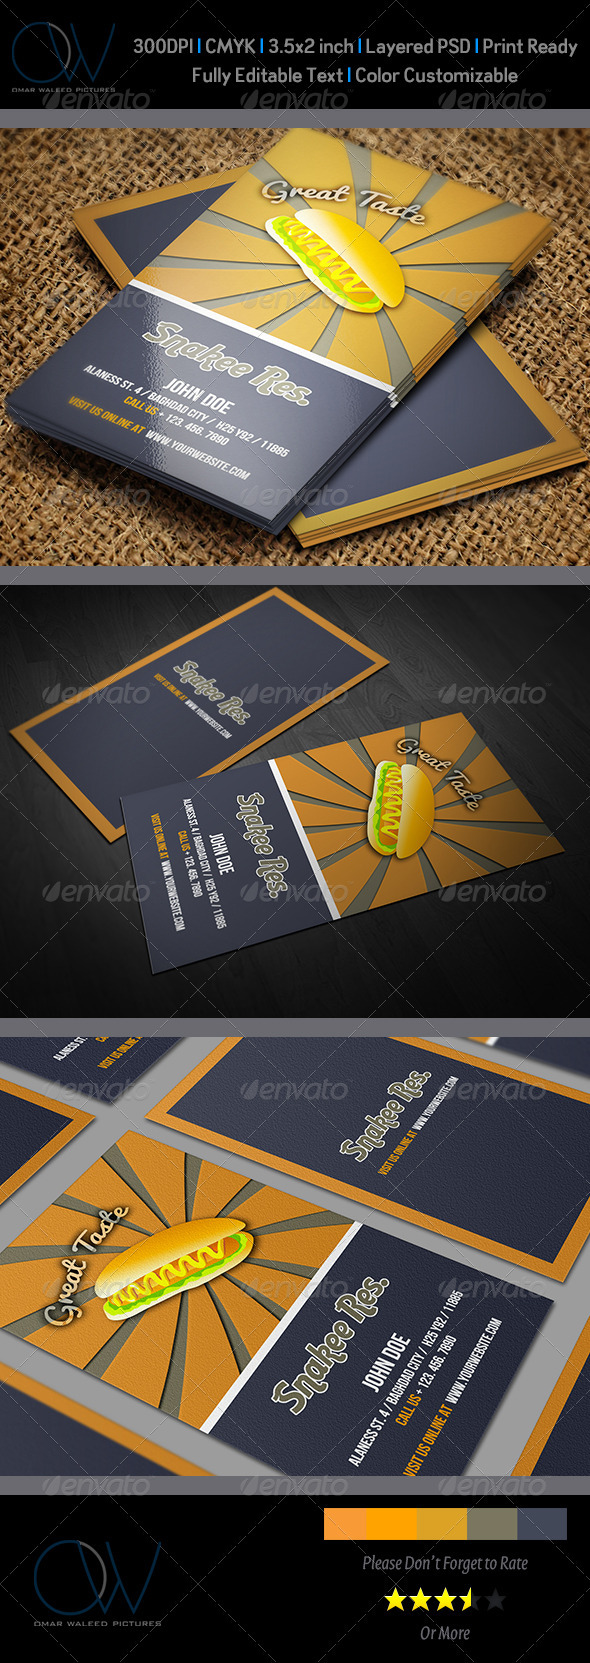 Sausage Restaurant Business Card - Creative Business Cards